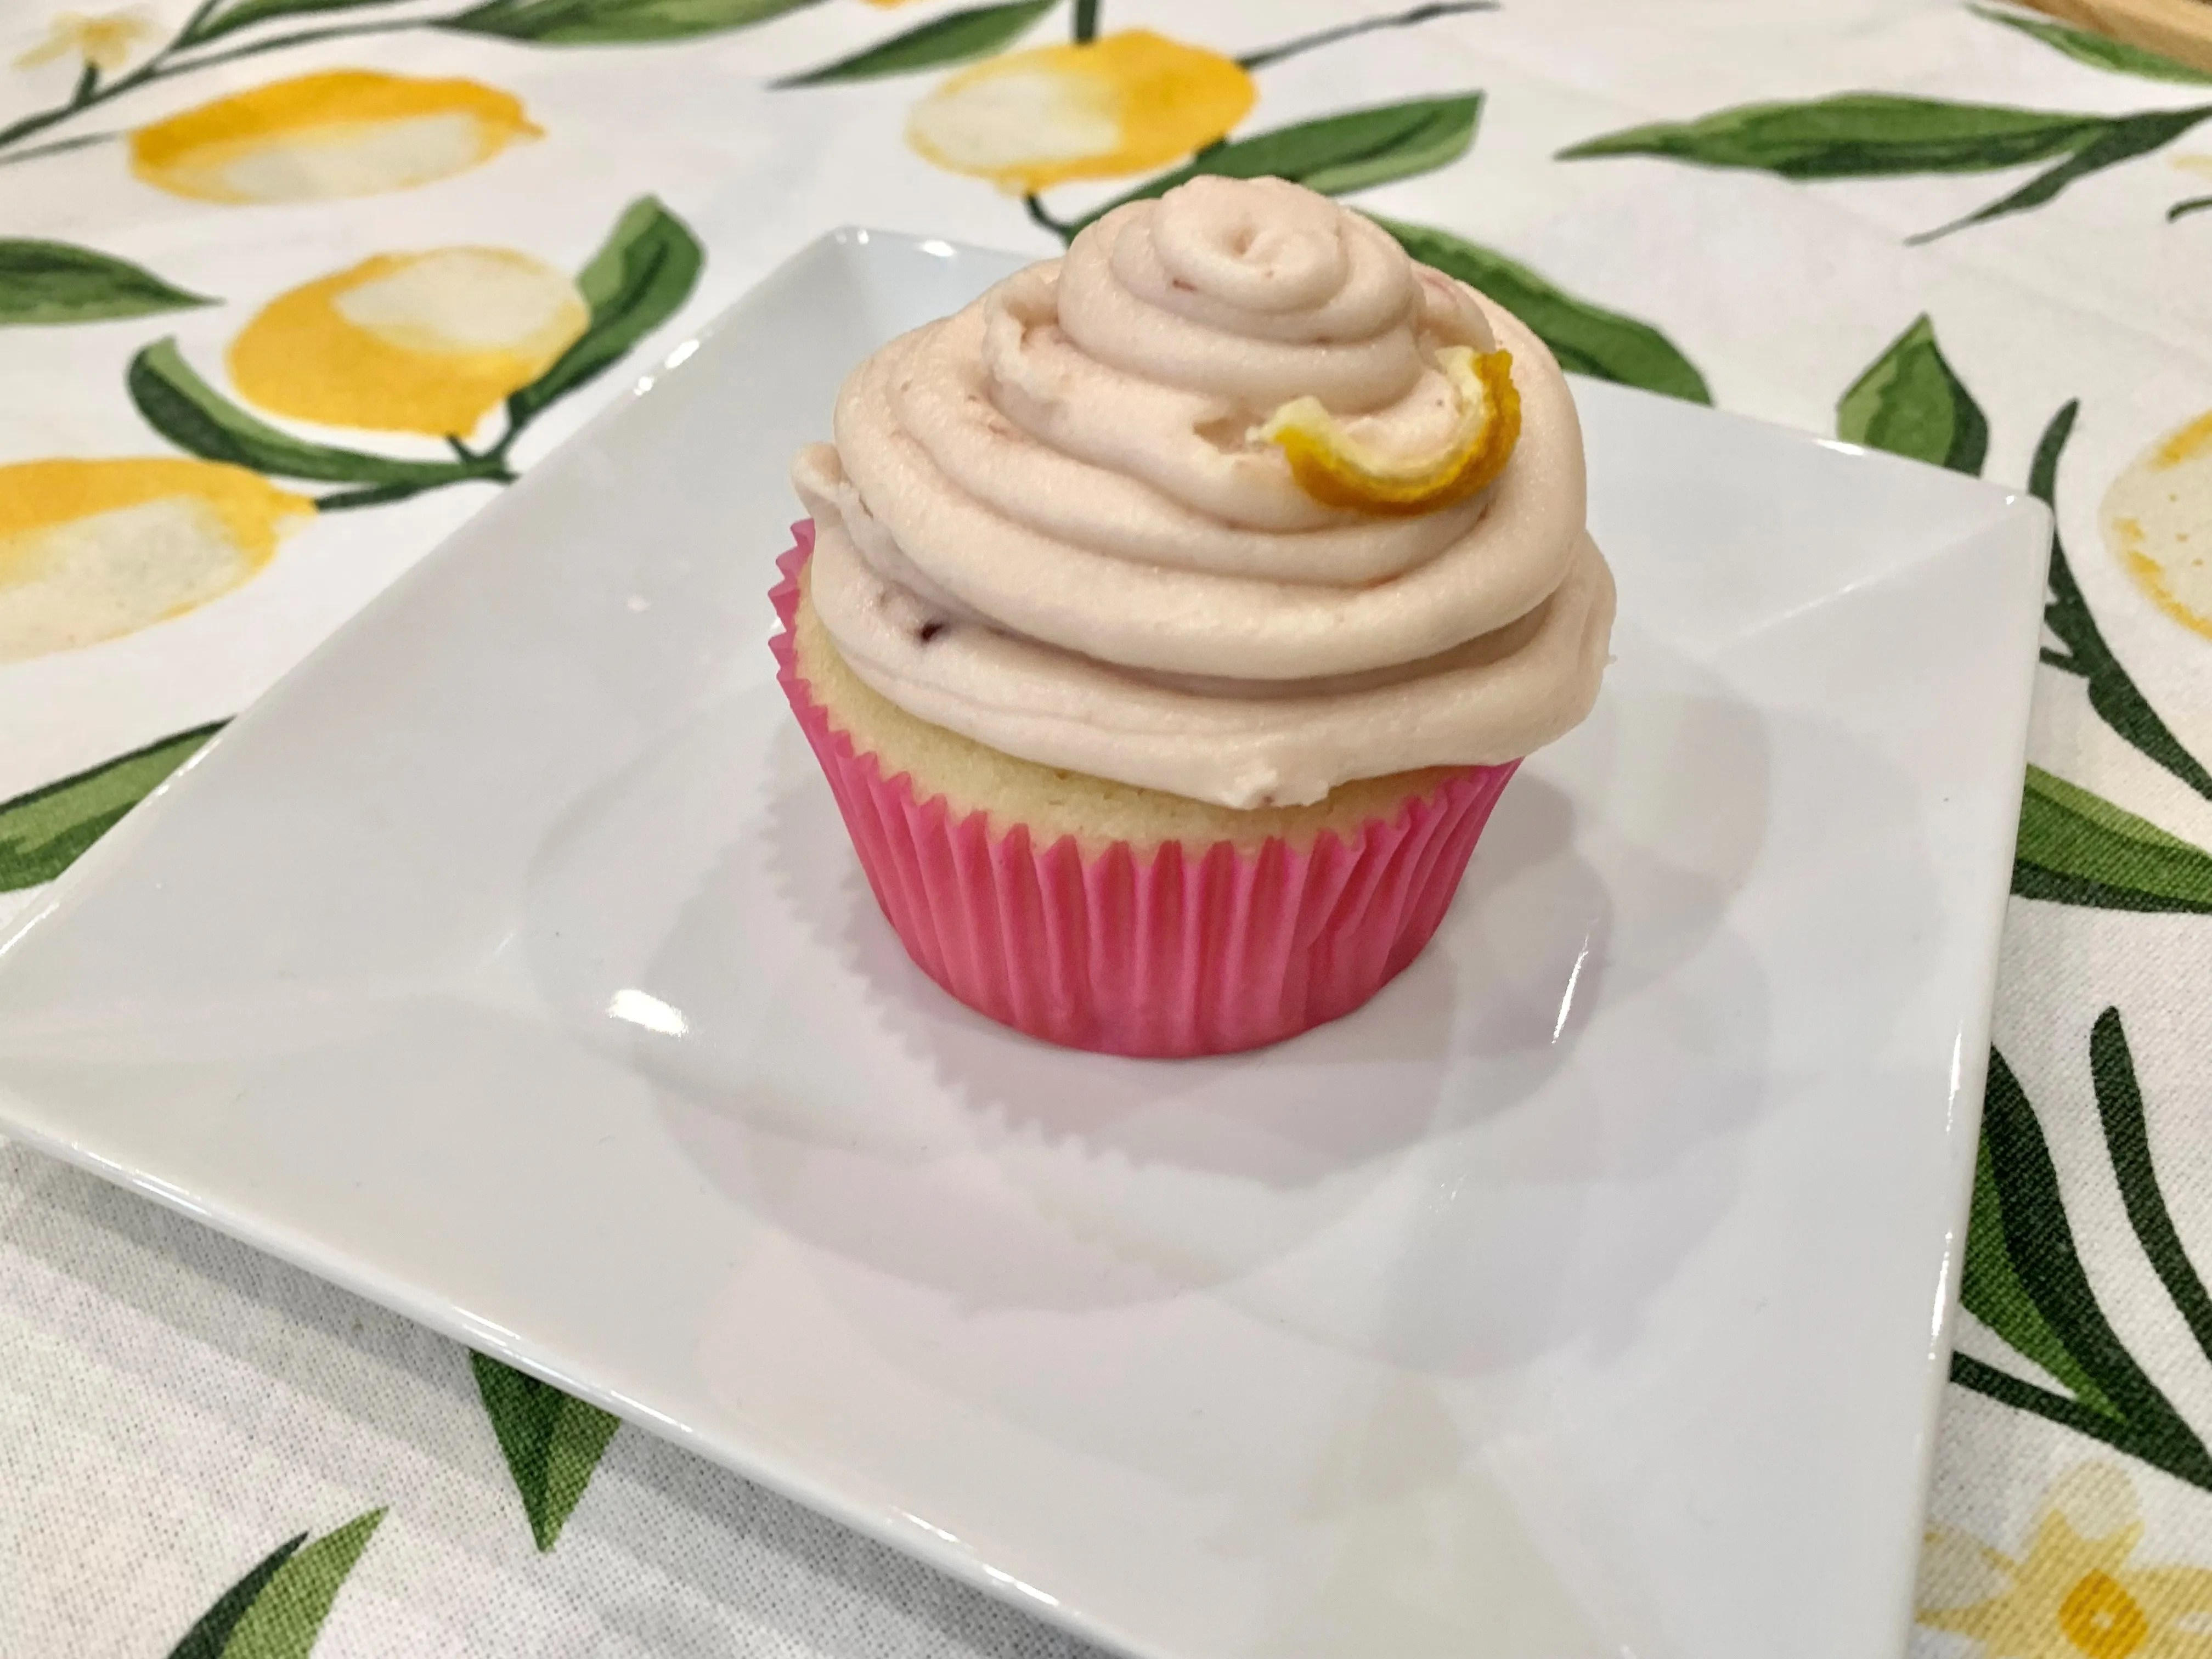 On the menu at The Curious Kitchen, 327 E. State St., Murfreesboro: made-from-scratch strawberry-lemon cupcake.